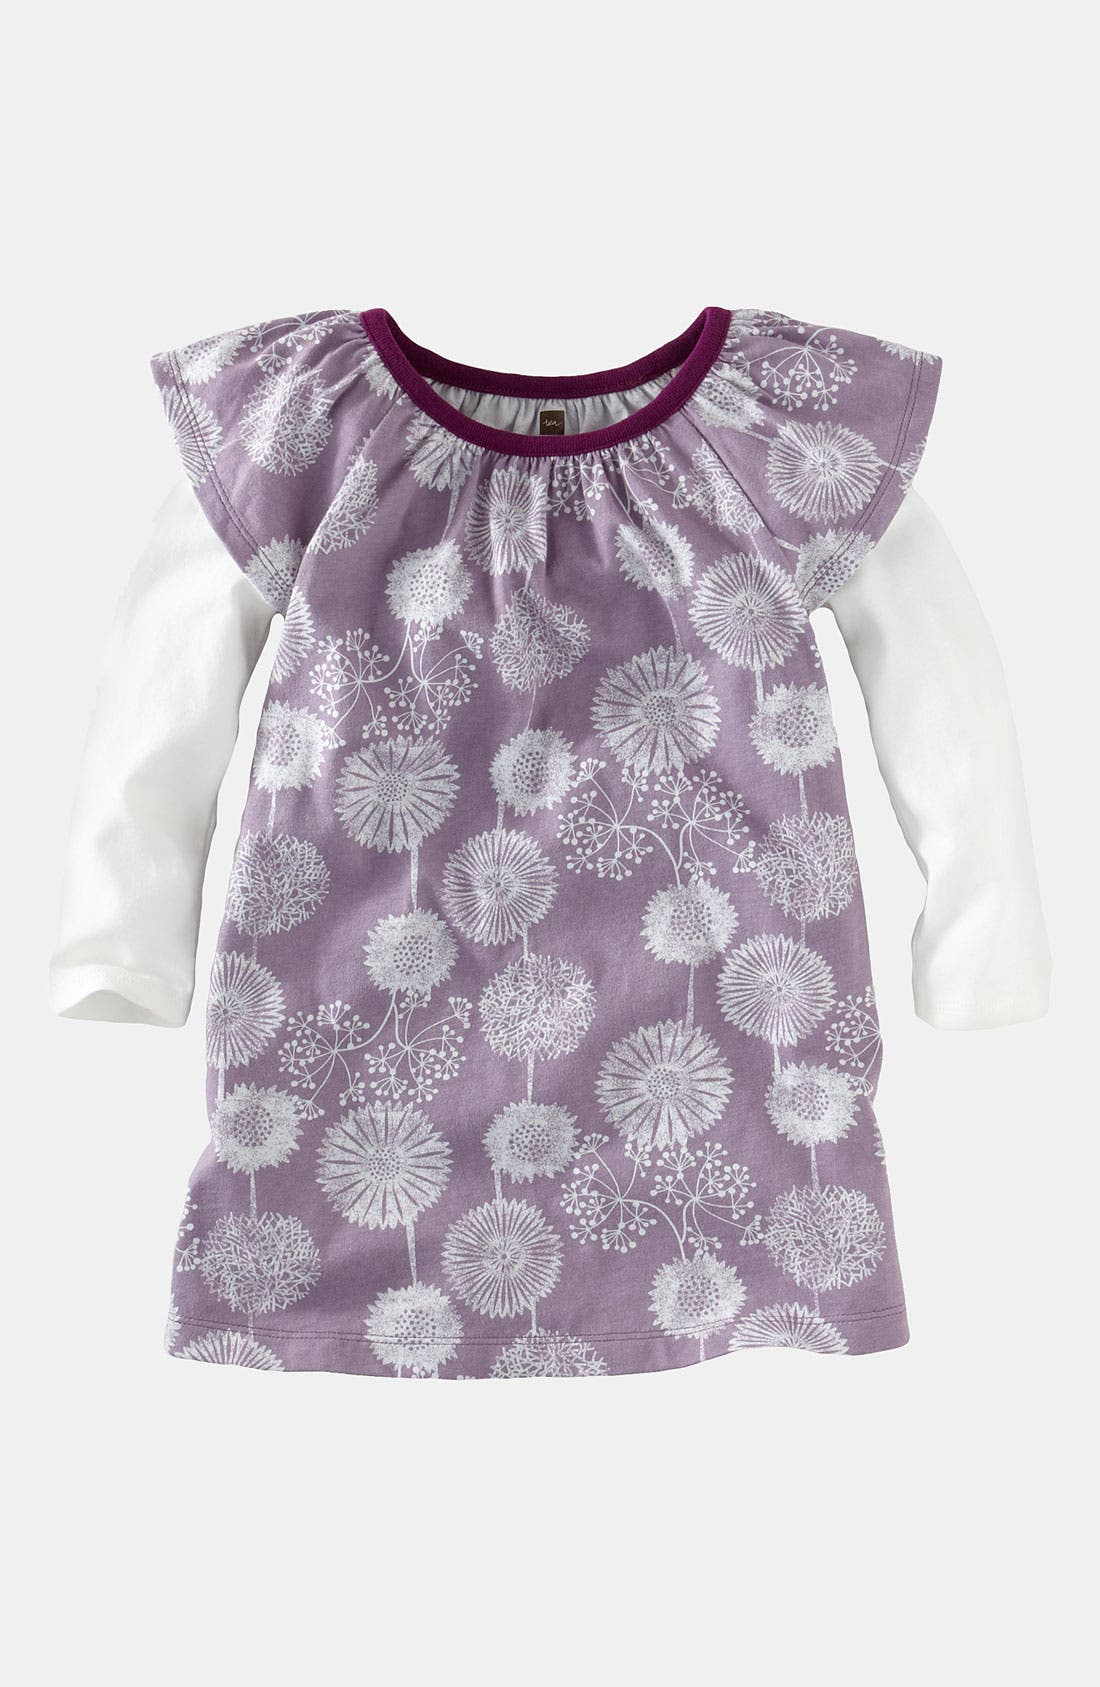 Alternate Image 1 Selected - Tea Collection 'Svenska Wildflower' Layered Sleeve Dress (Toddler)